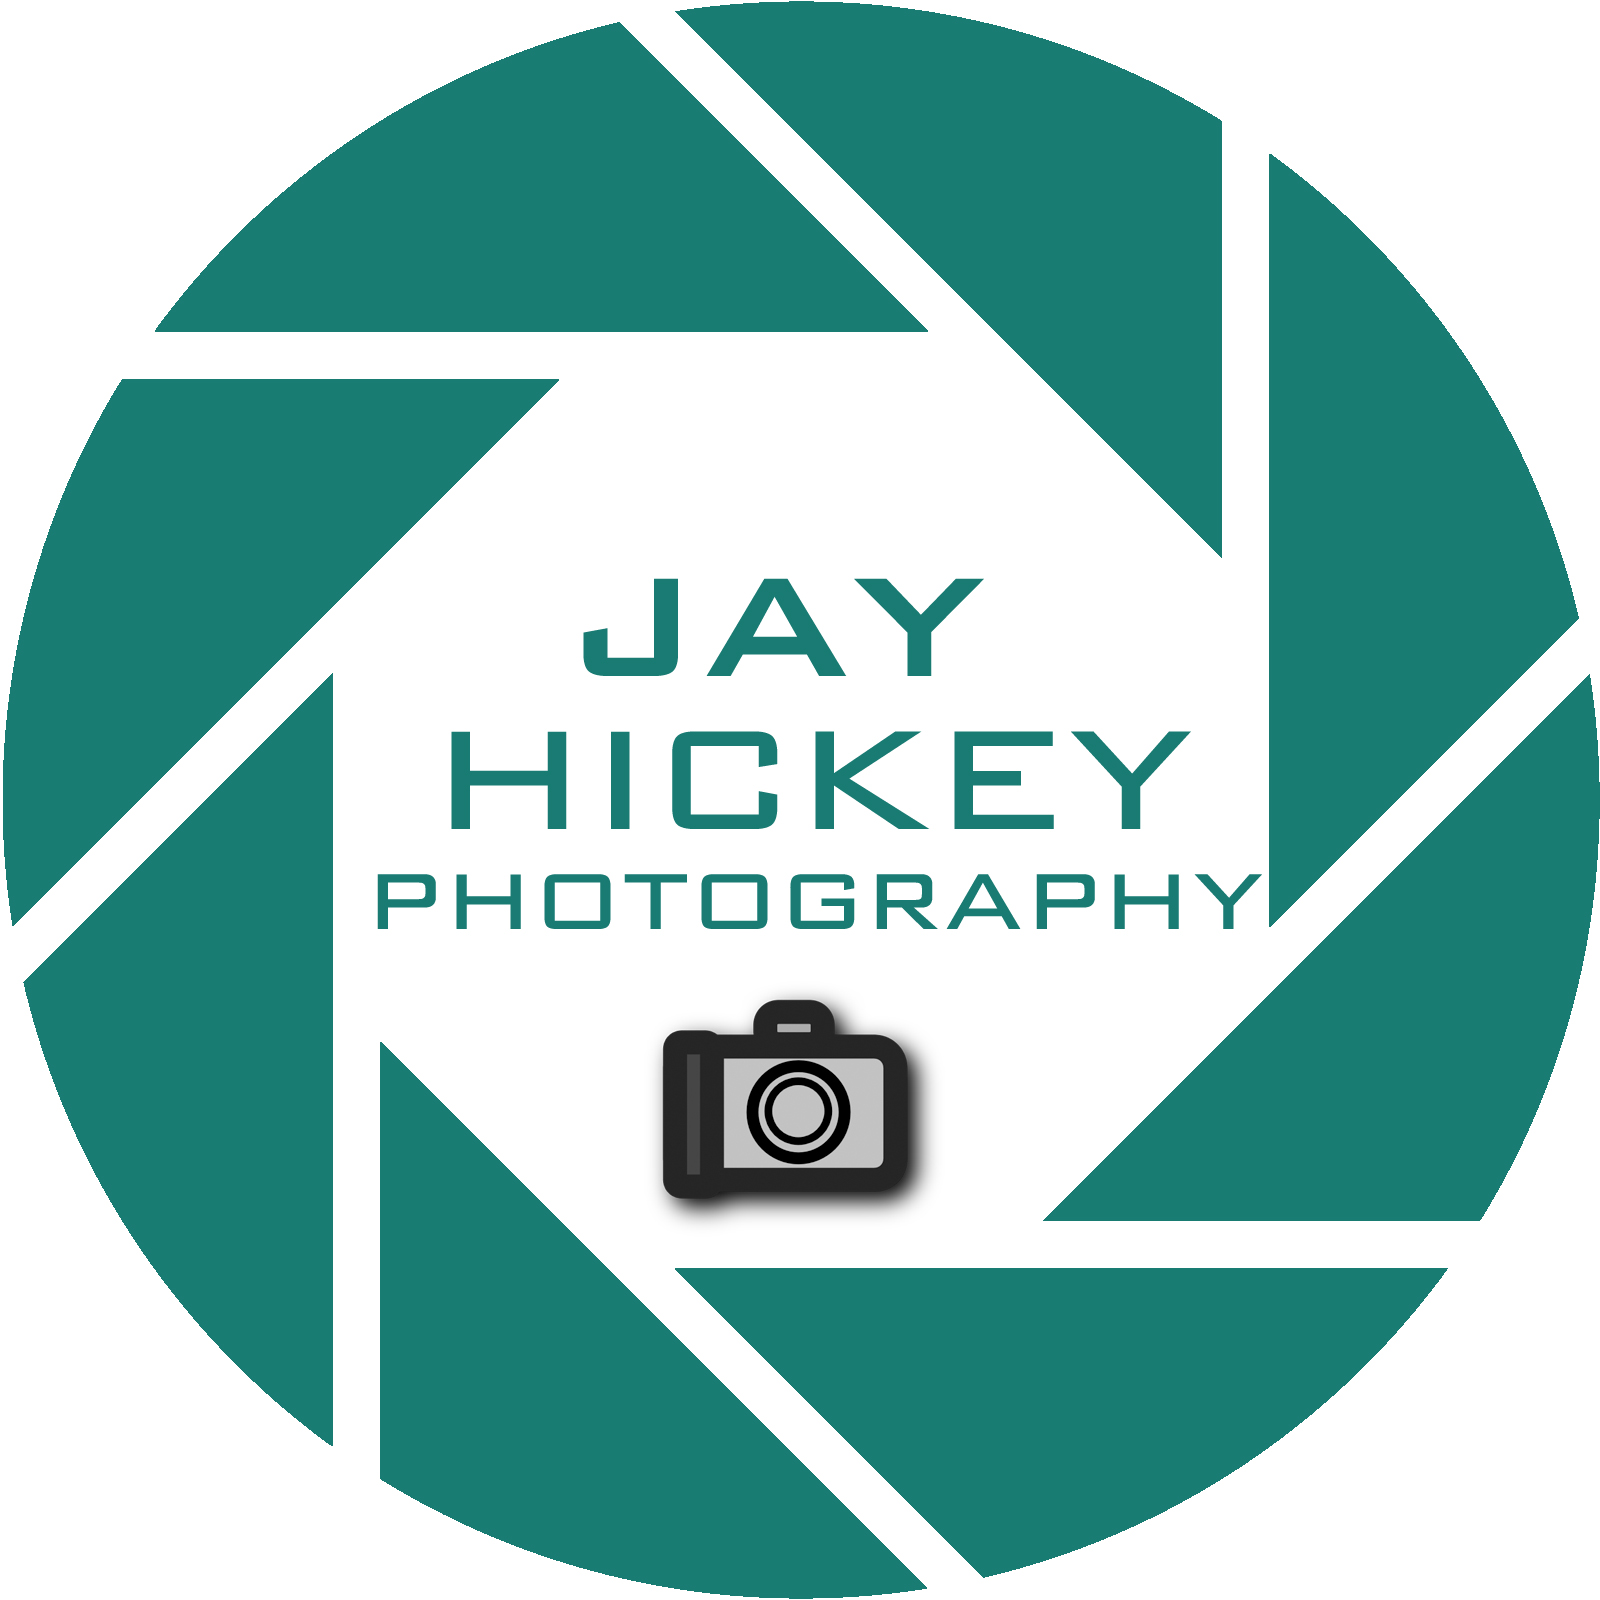 Jay Hickey Photography